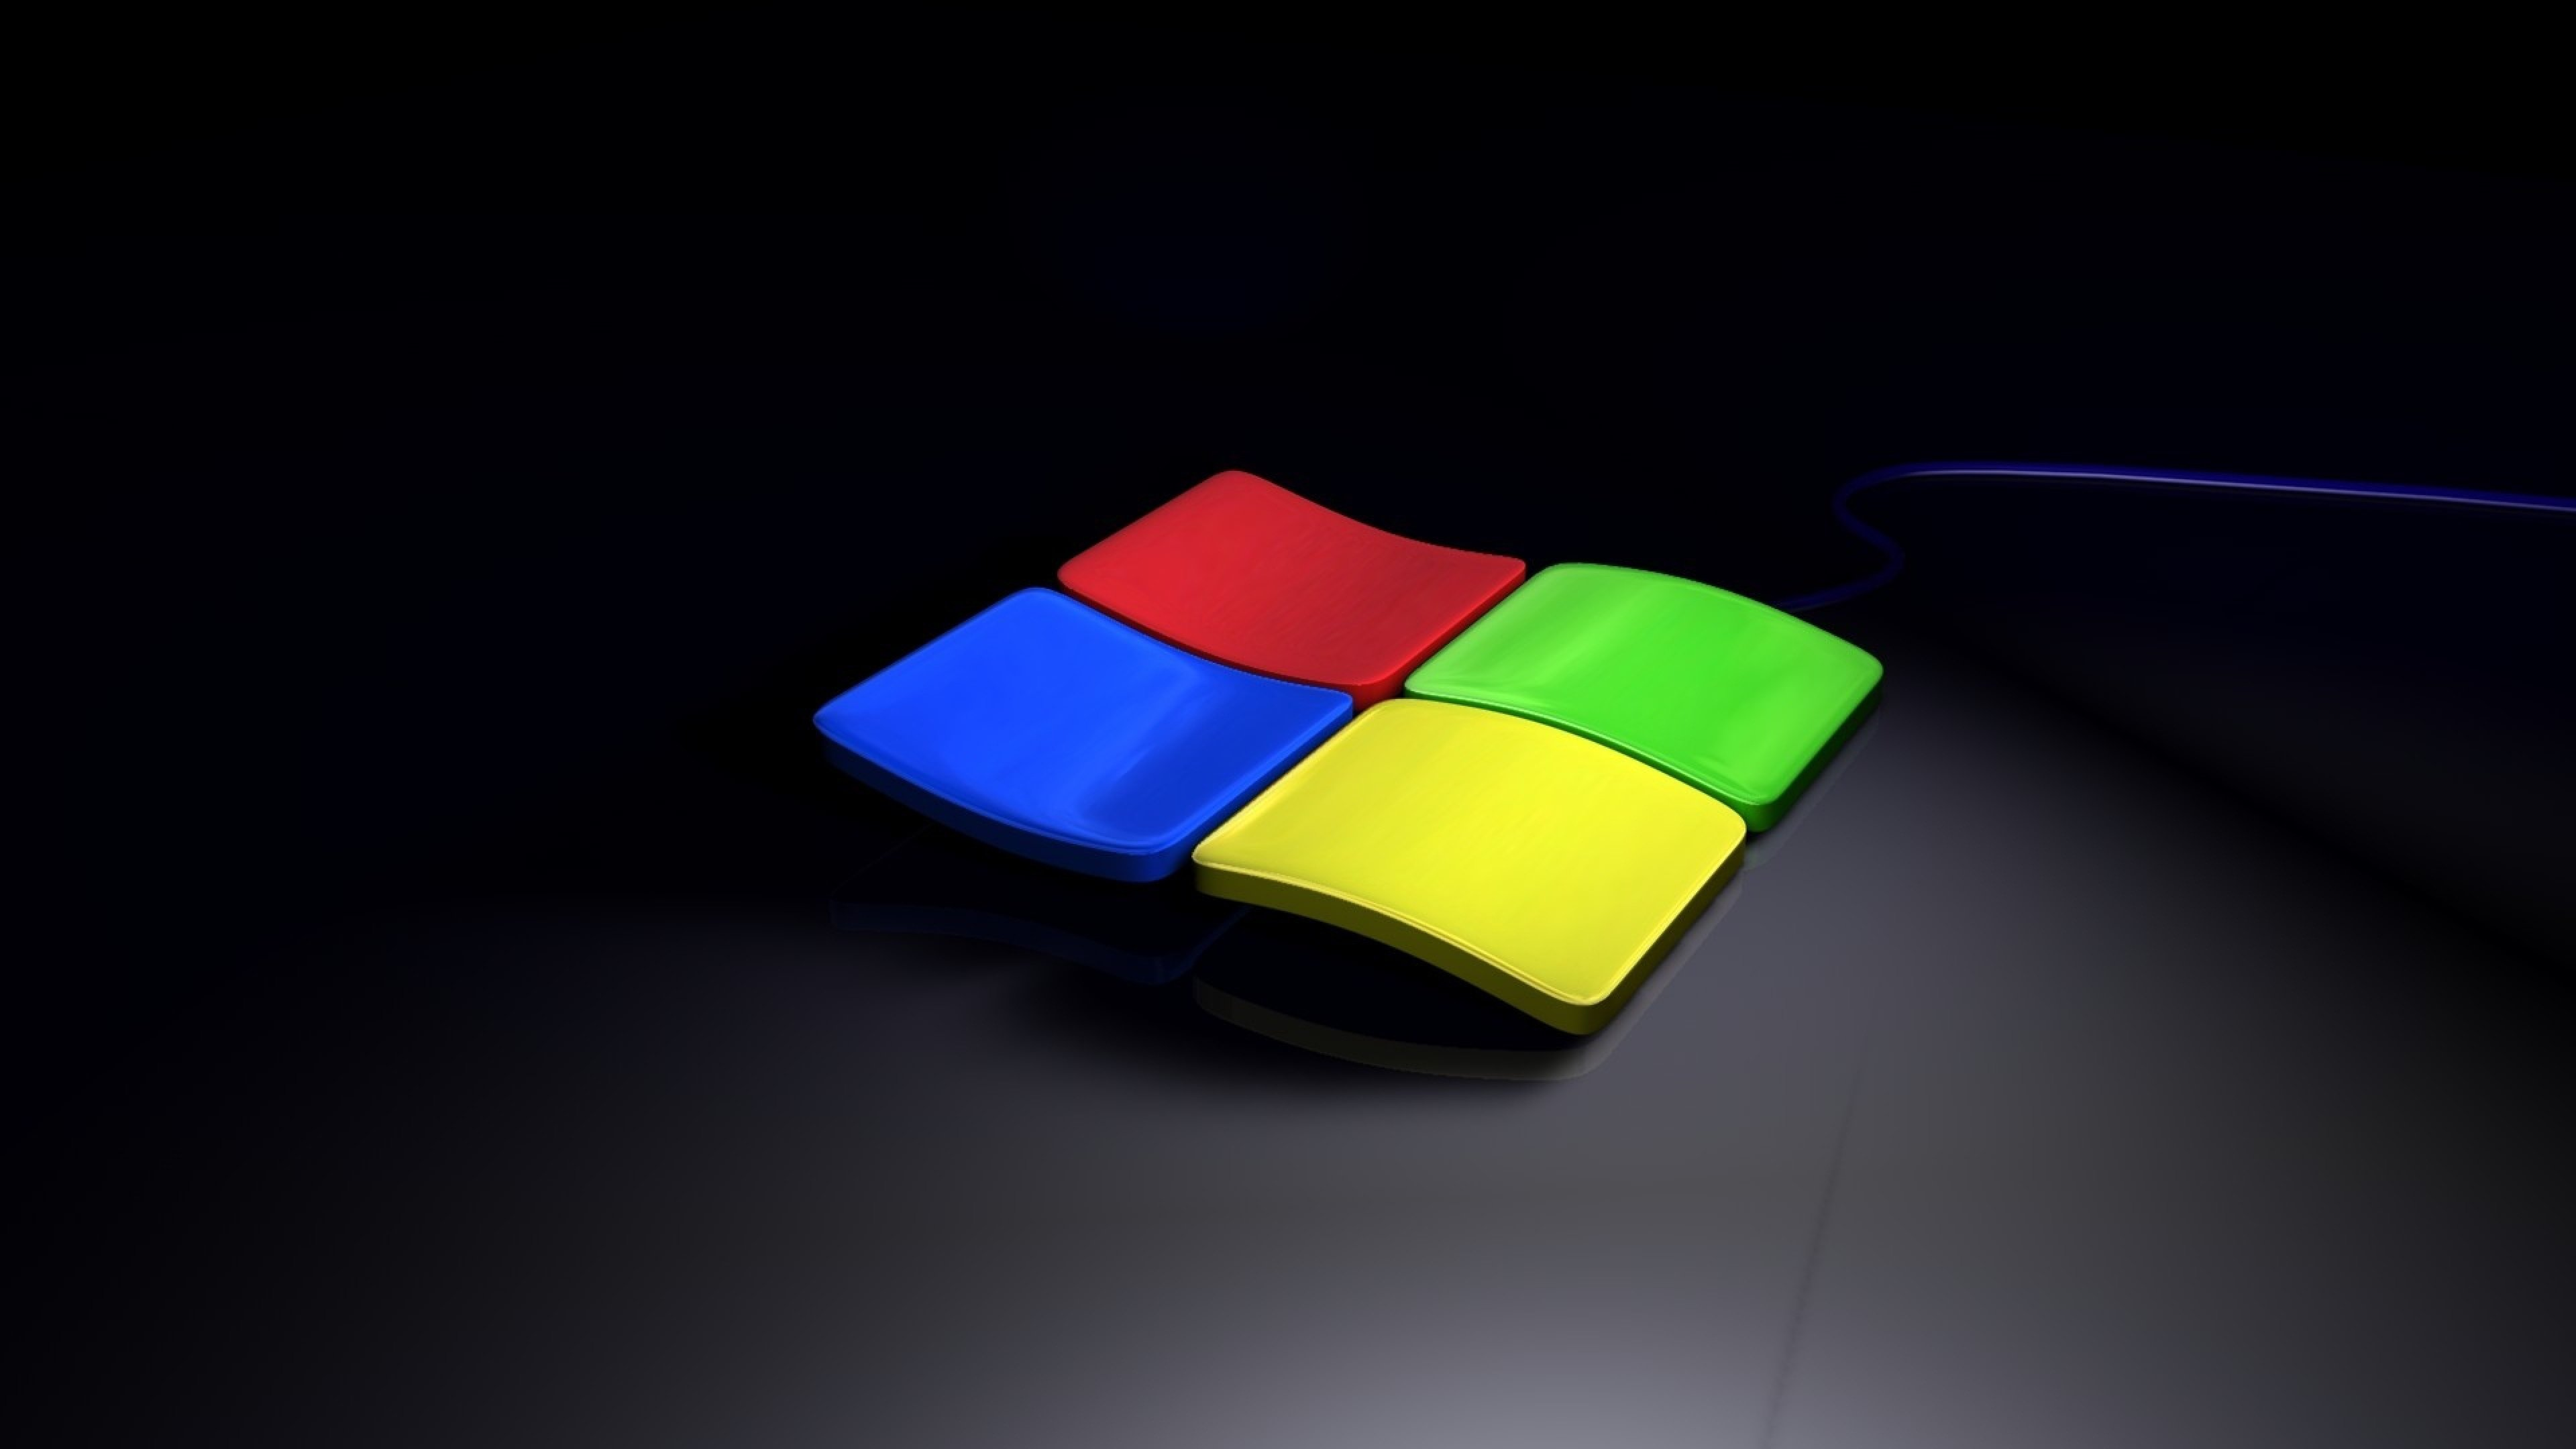 Download 3840x2160 Windows 7 Style Computer Wallpaper Background 4K 3840x2160